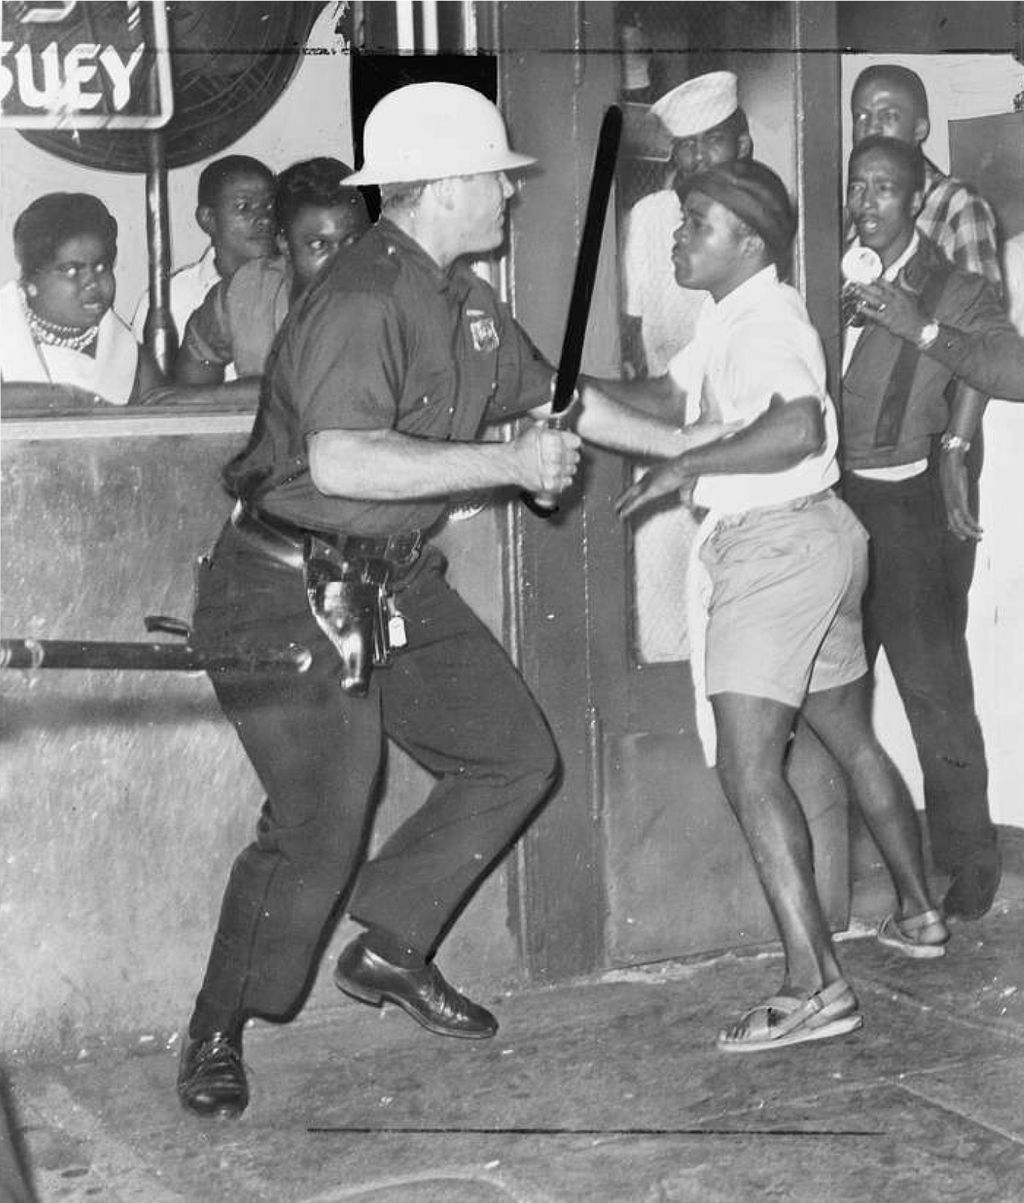 Police officer lifts a police baton at a young black man